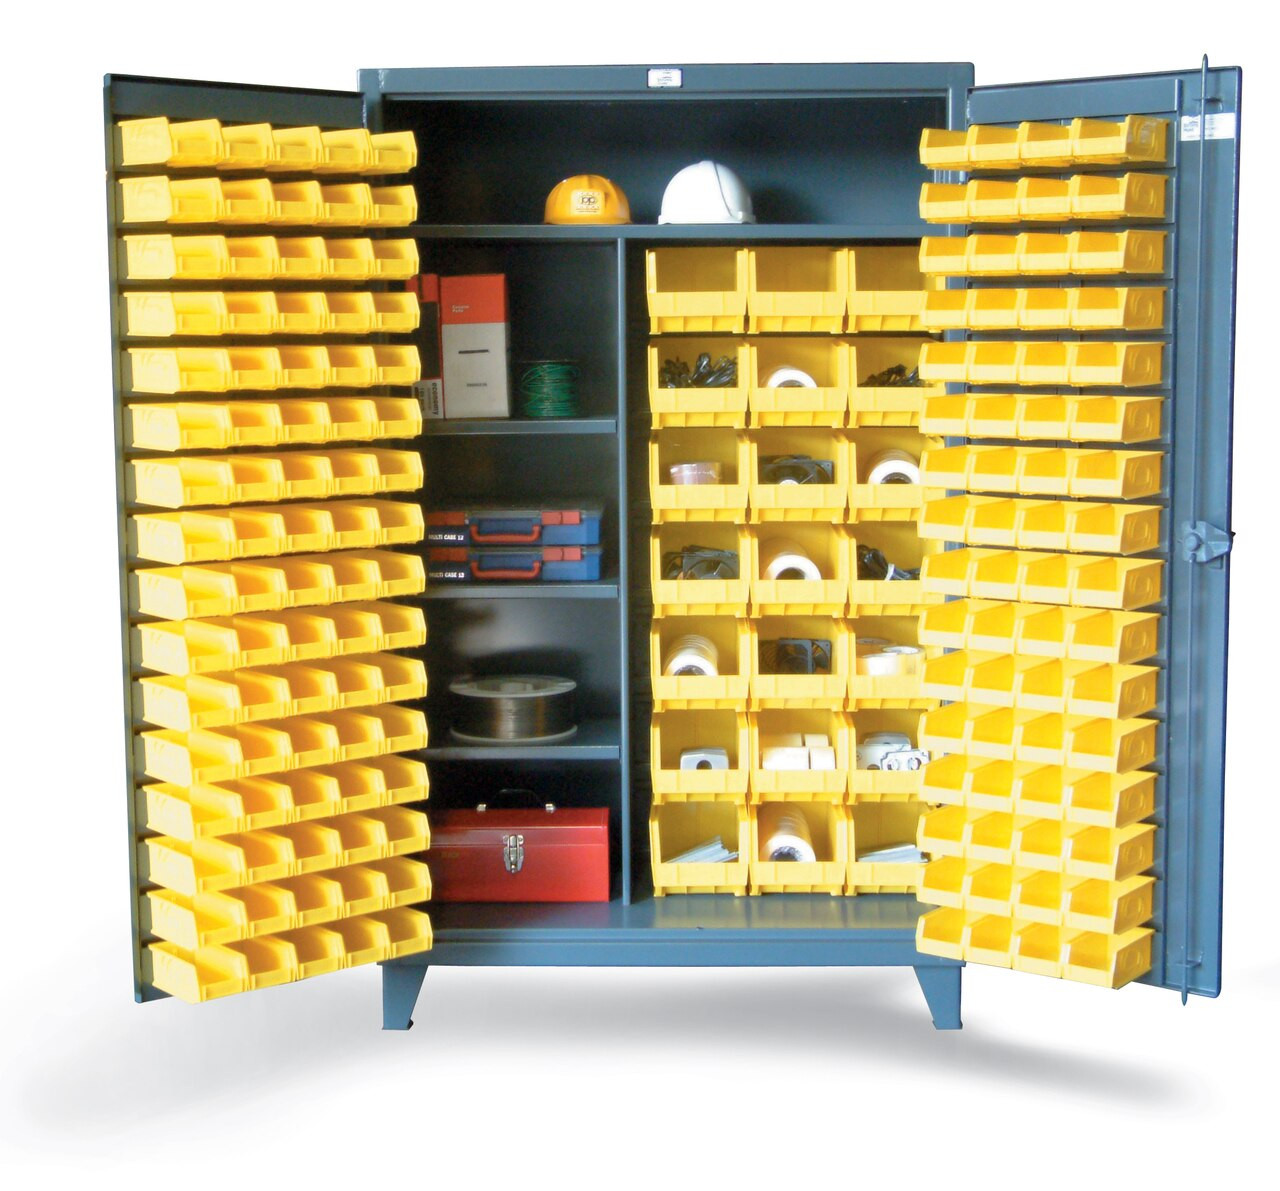 46-BSCW-241-3WLR Bin Storage Cabinet with Half-Width Shelves 48  sc 1 st  Industrial Shelving Systems & 46-BSCW-241-3WLR Bin Storage Cabinet with Half-Width Shelves 48